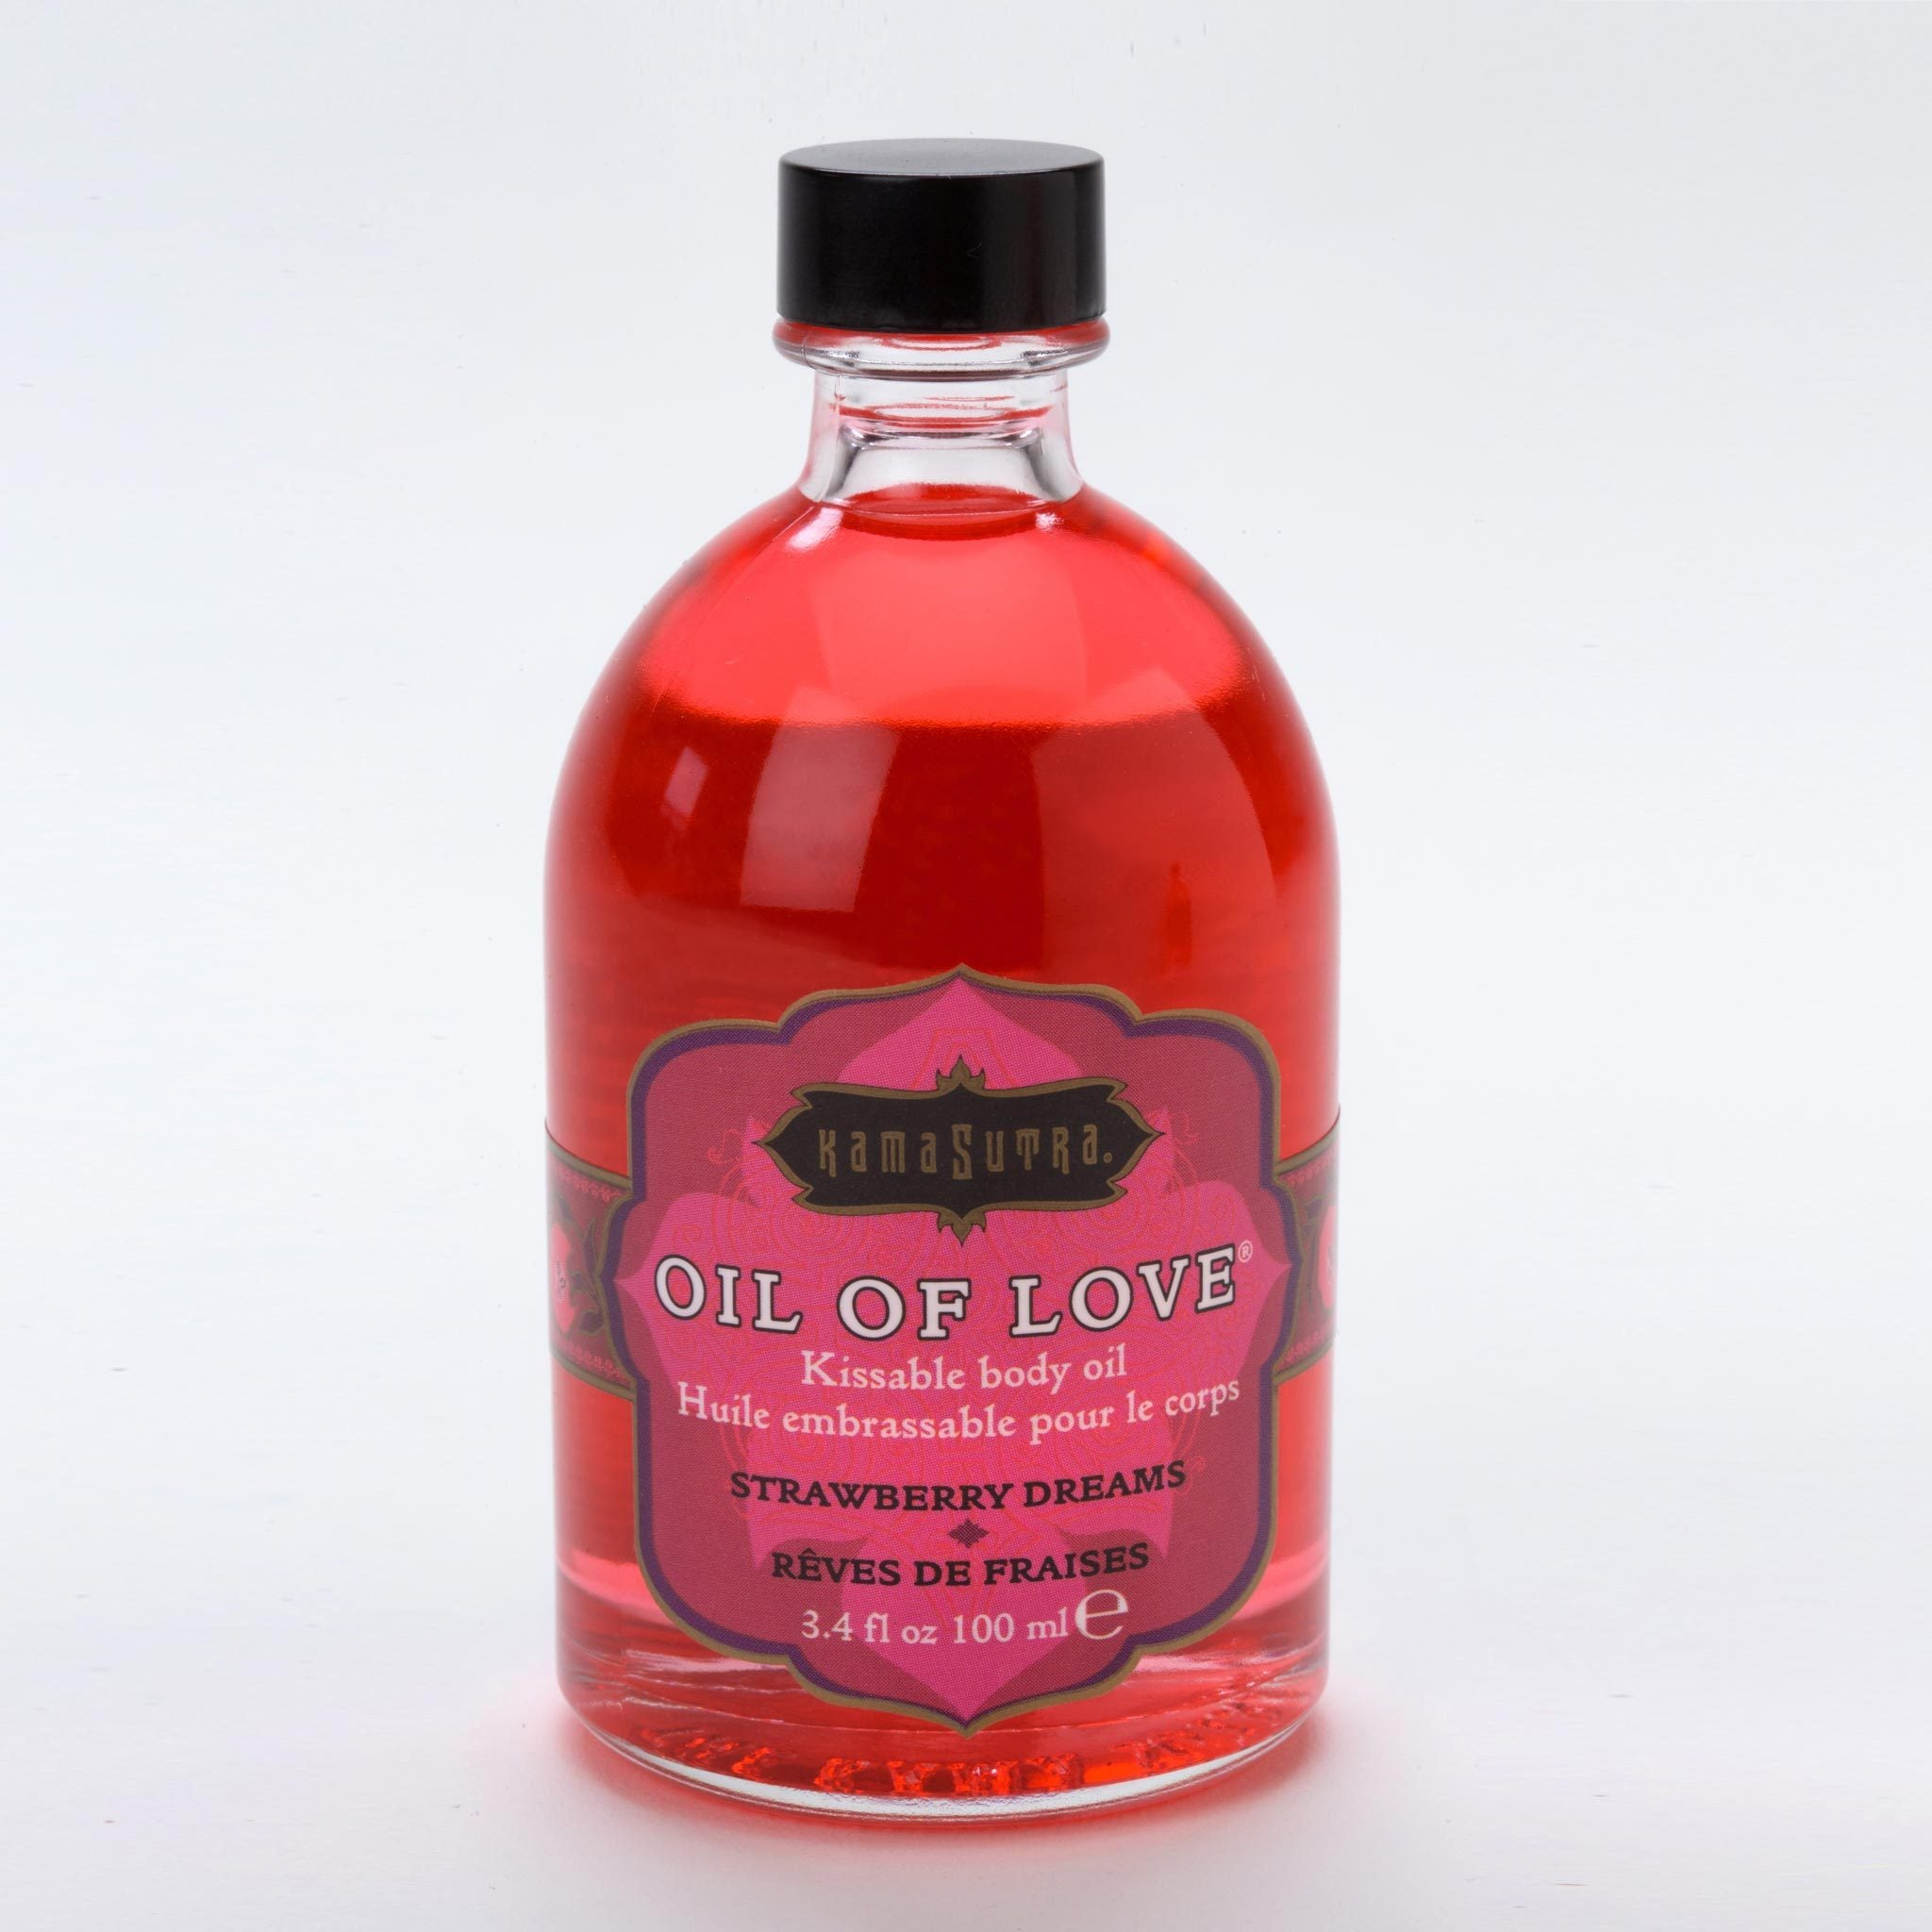 Kama Sutra Oil of Love